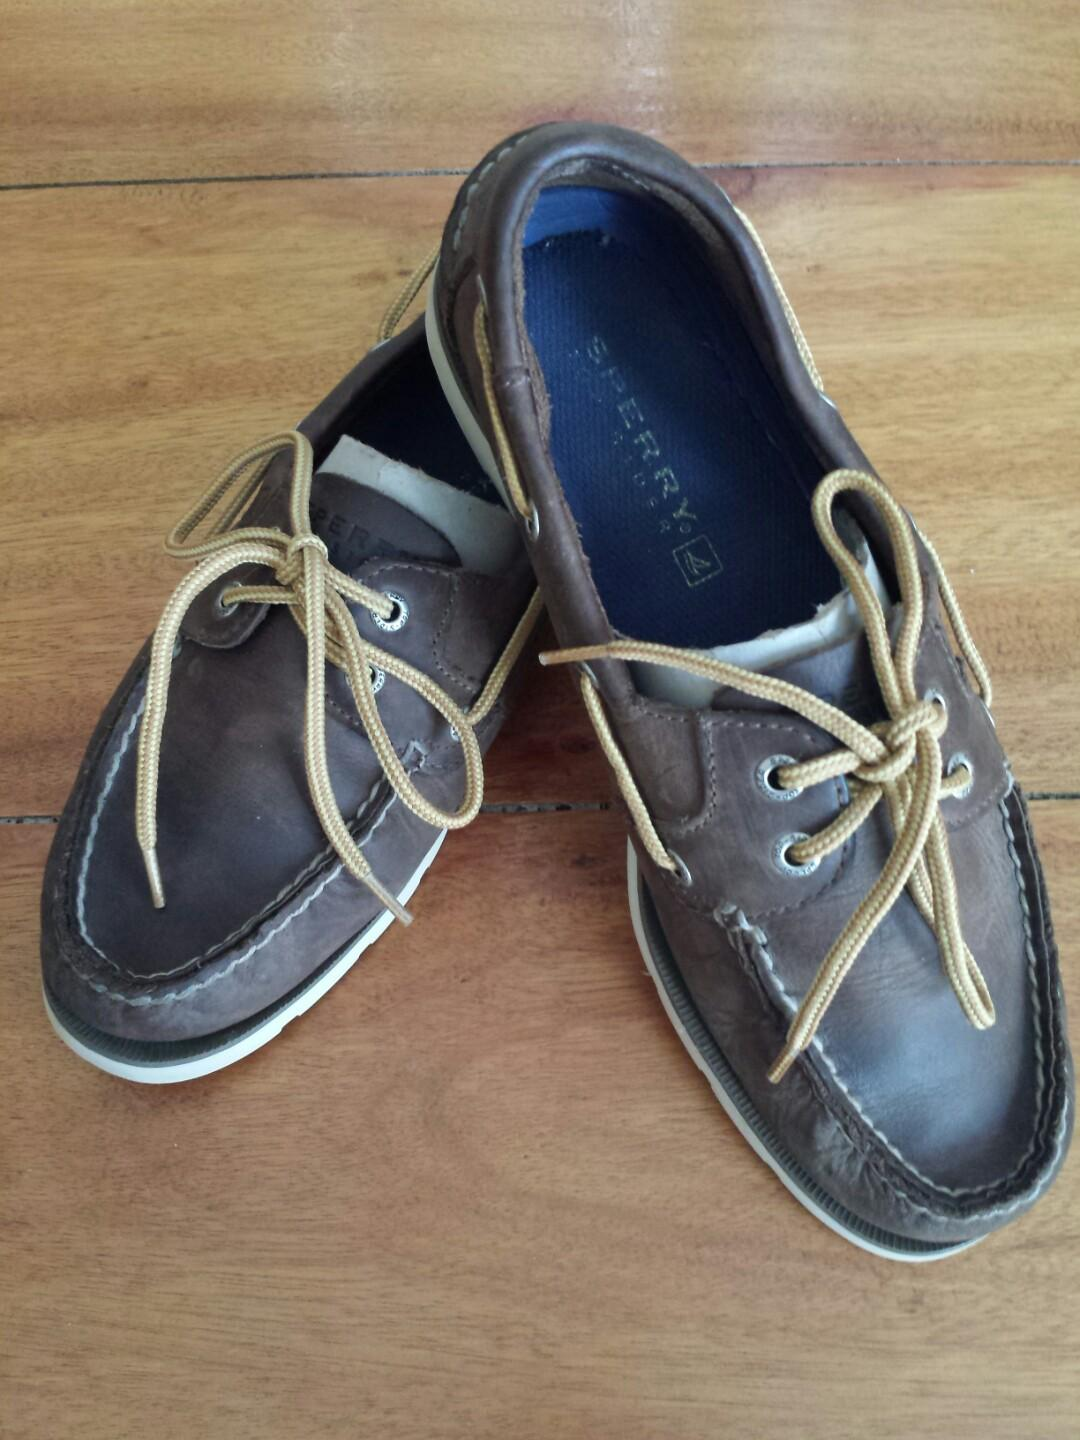 A Der 2 eye LeatherChaussures Sperry o F13Tl5JuKc